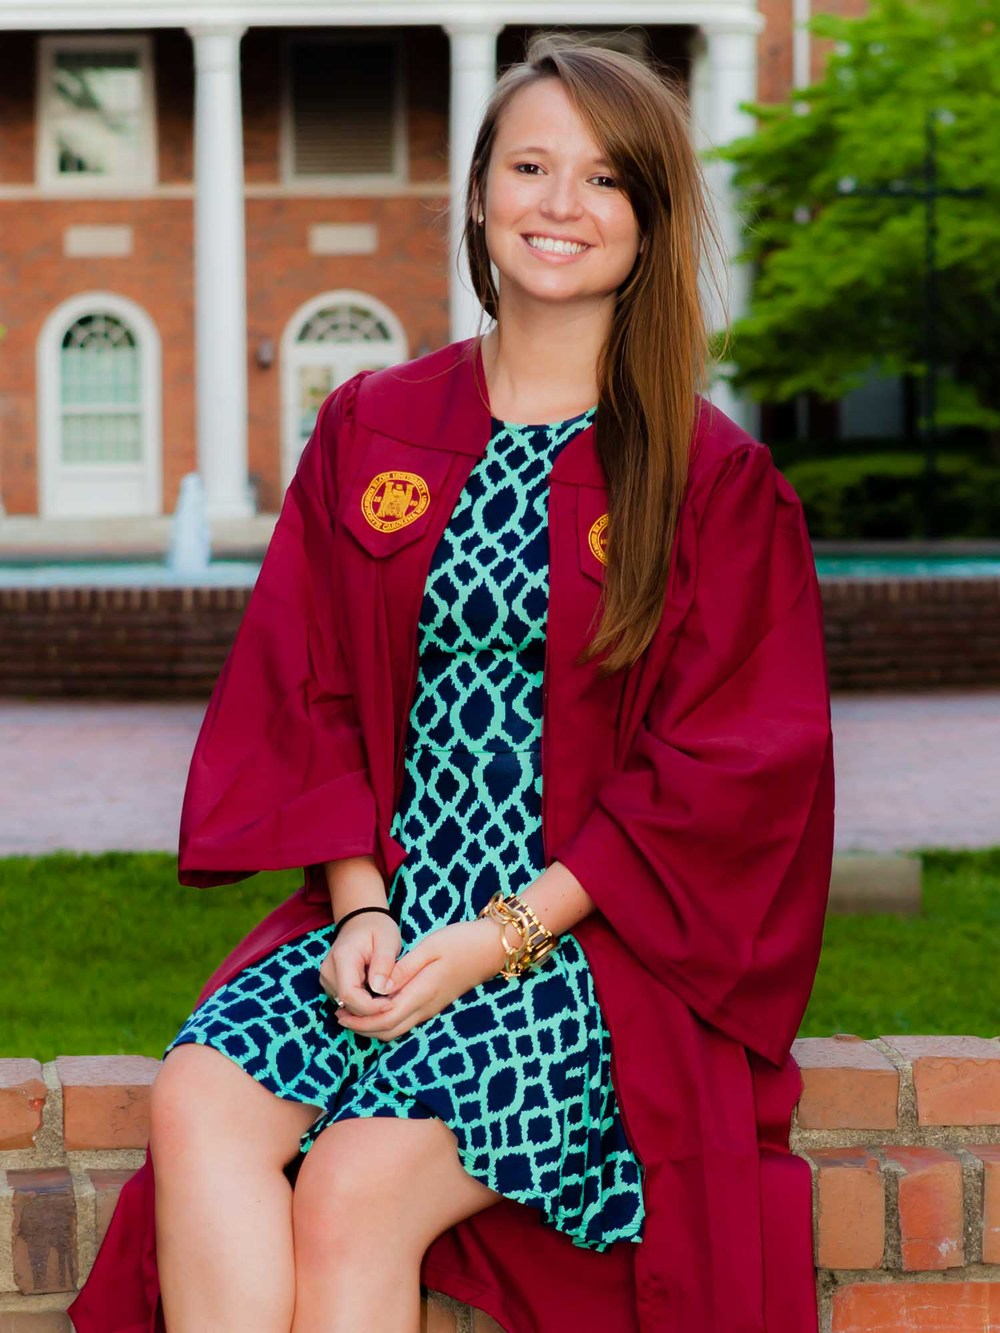 573-Becca & Friends Elon Graduation Portraits_.jpg